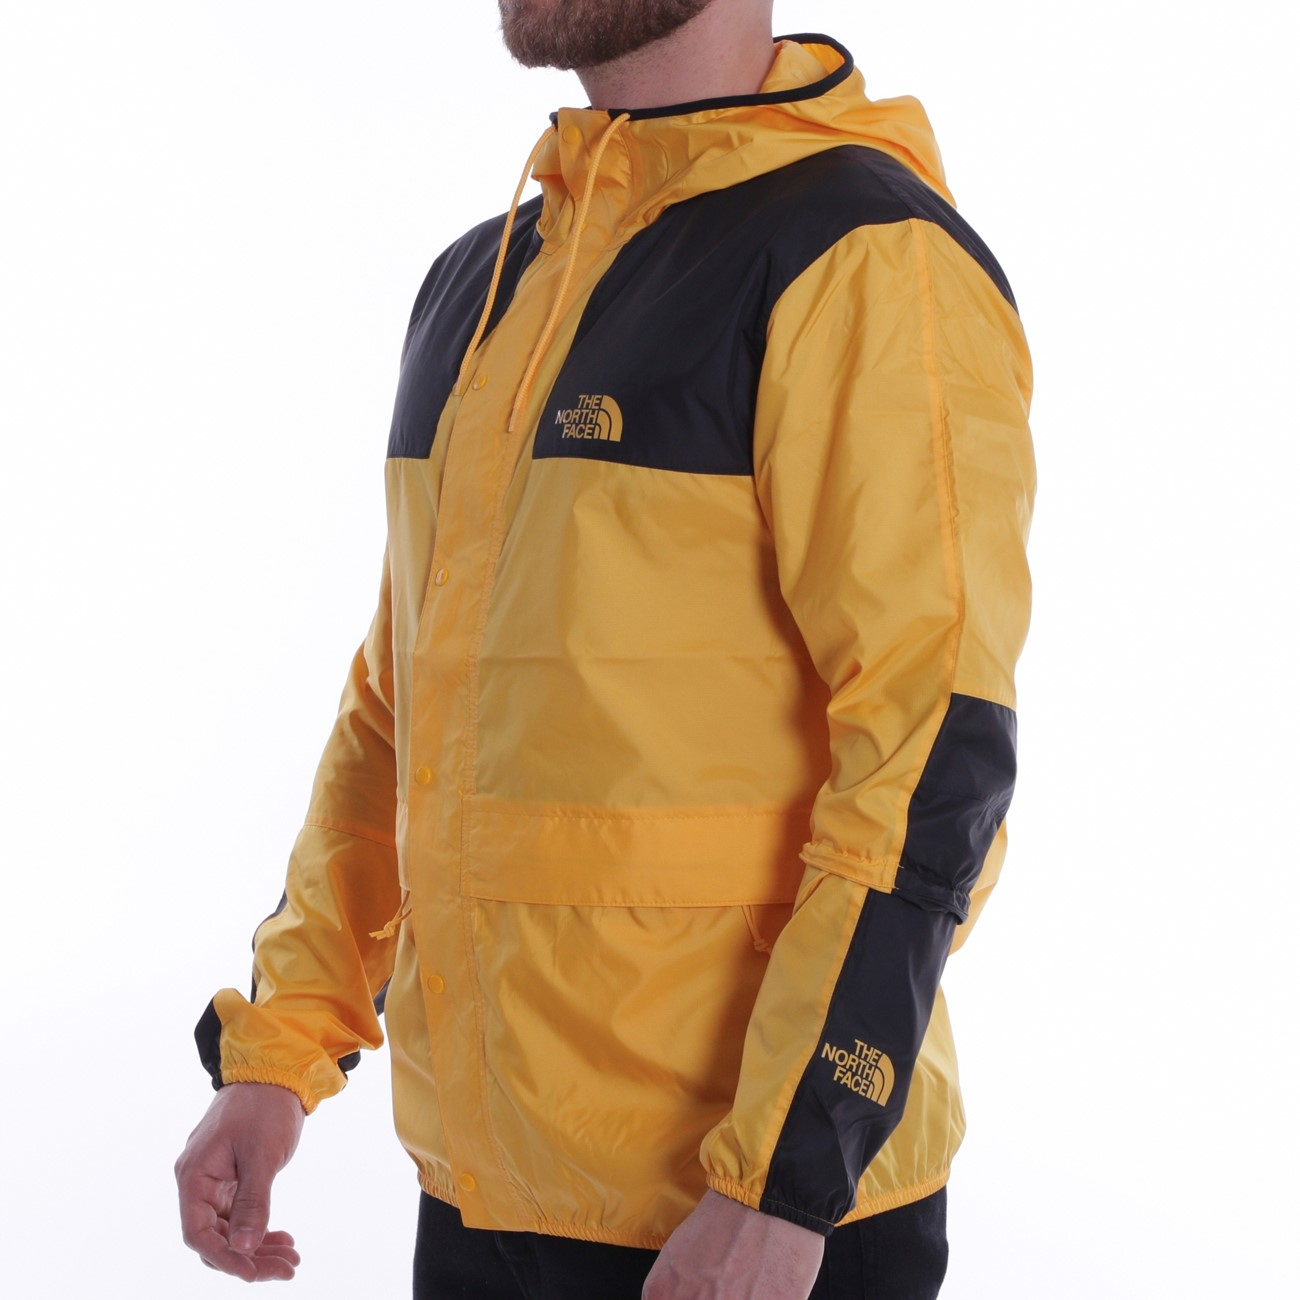 951a9255 The North Face - 1985 Mountain | Drop Dead